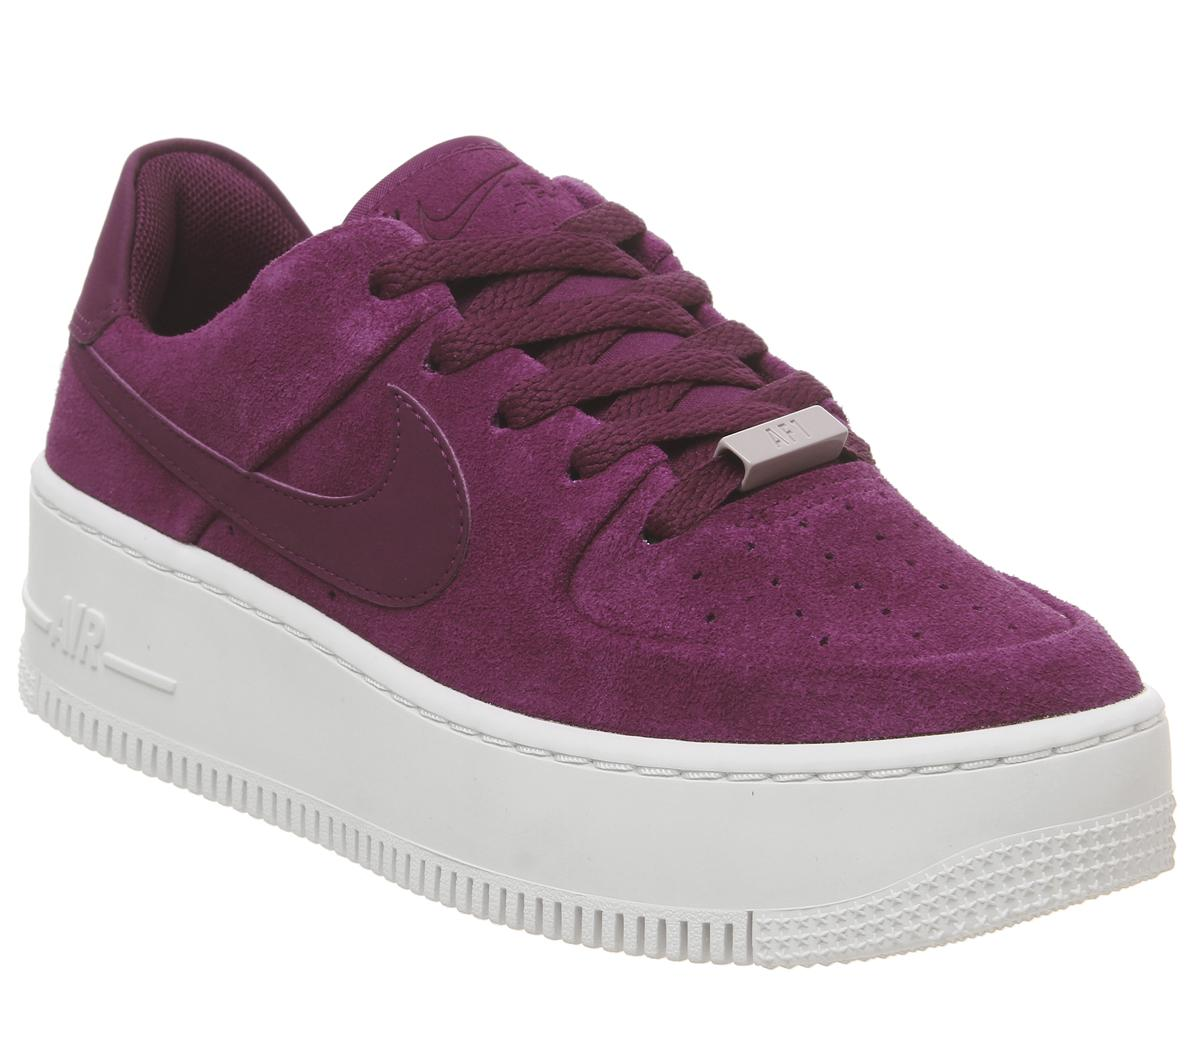 6afad2b3fd6 Nike Air Force 1 Sage Trainers True Berry Plum Chalk - Hers trainers